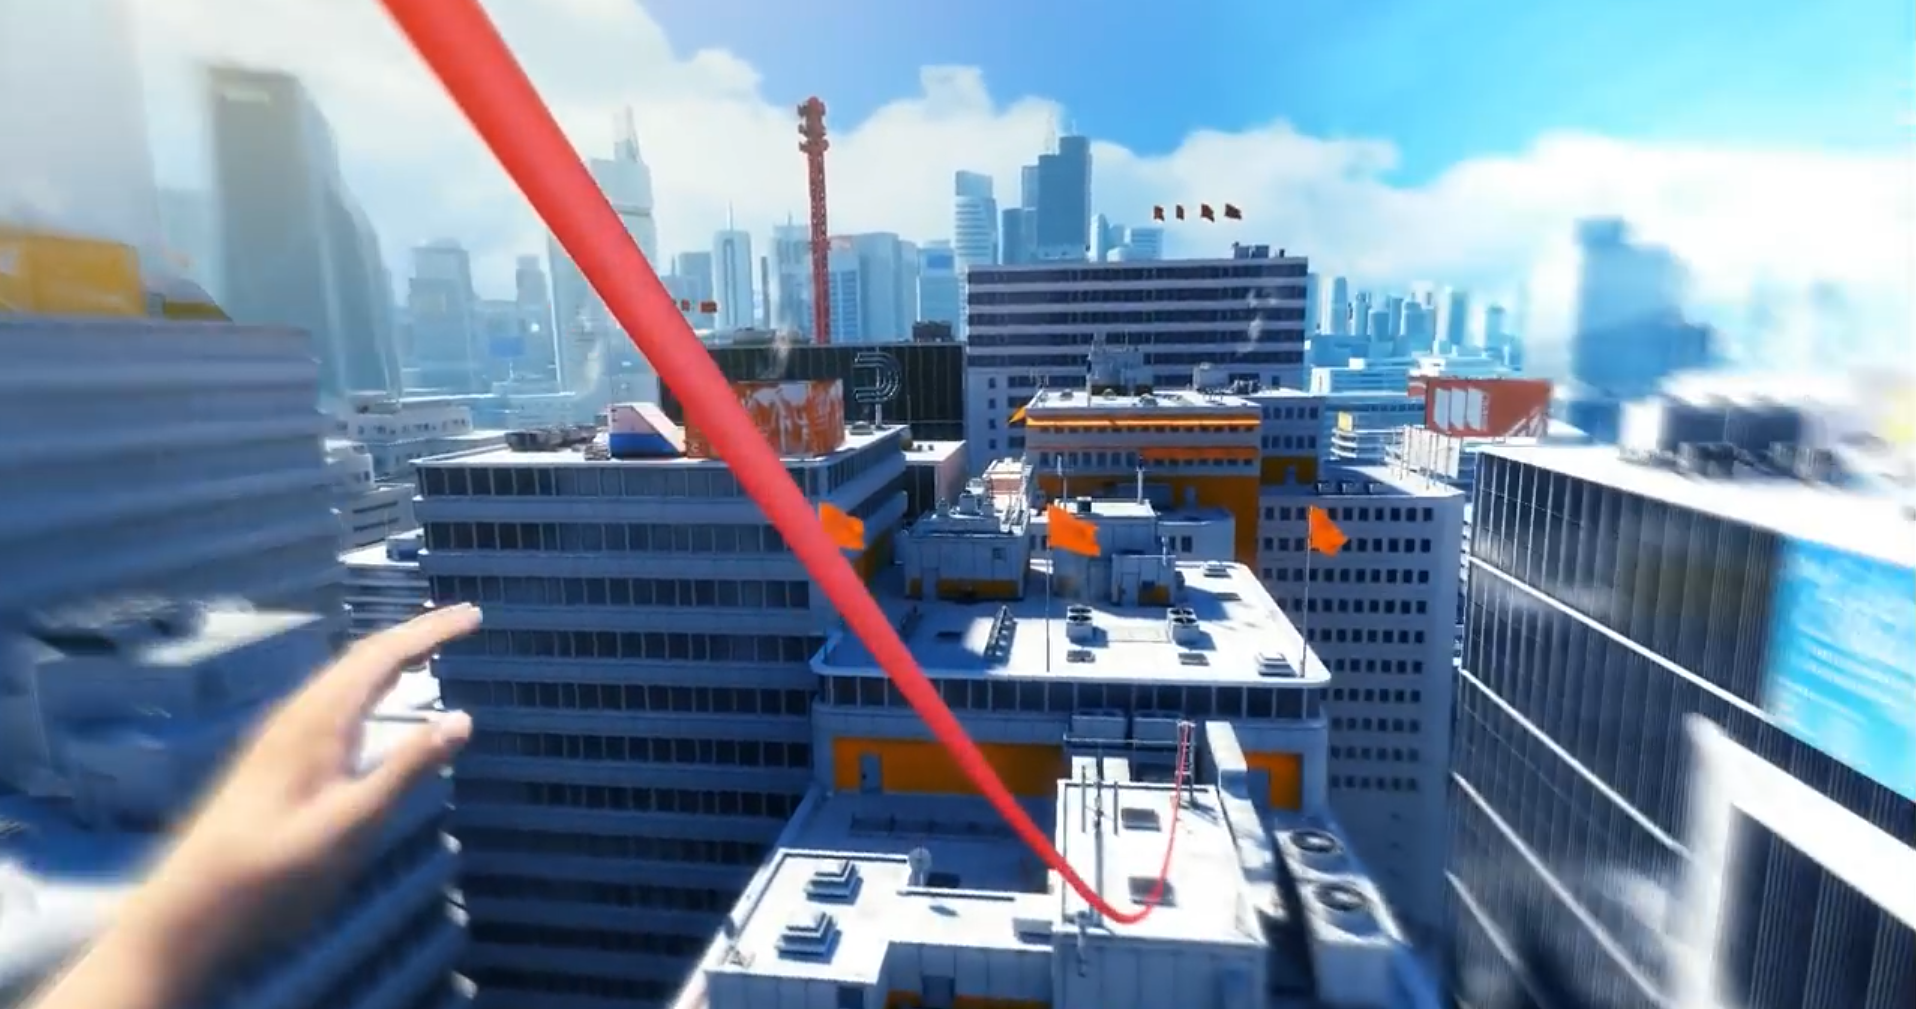 gpp_mirrors_edge